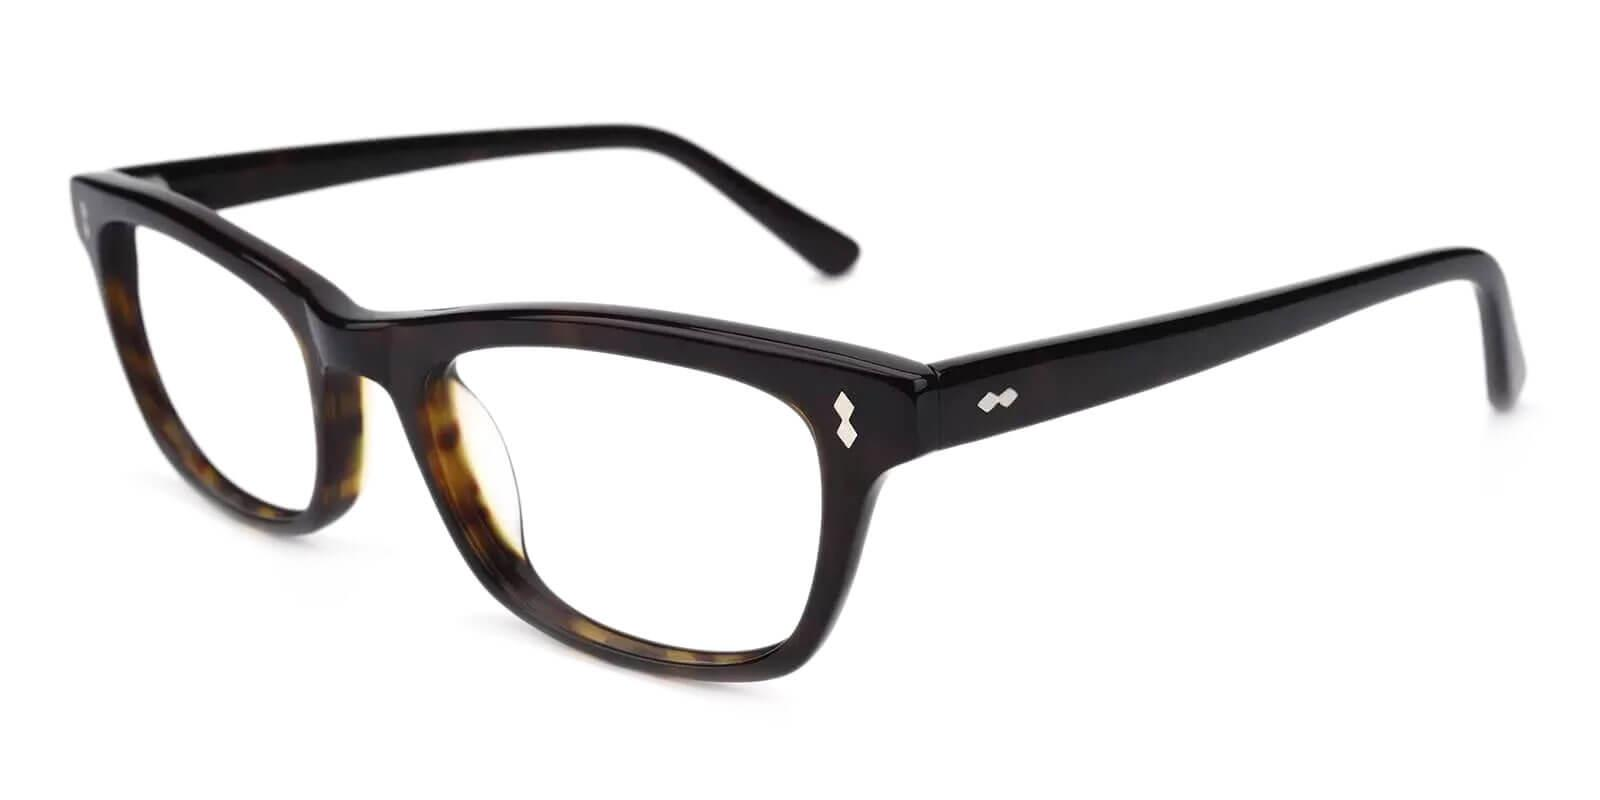 Leaf Pattern Acetate UniversalBridgeFit , Eyeglasses Frames from ABBE Glasses